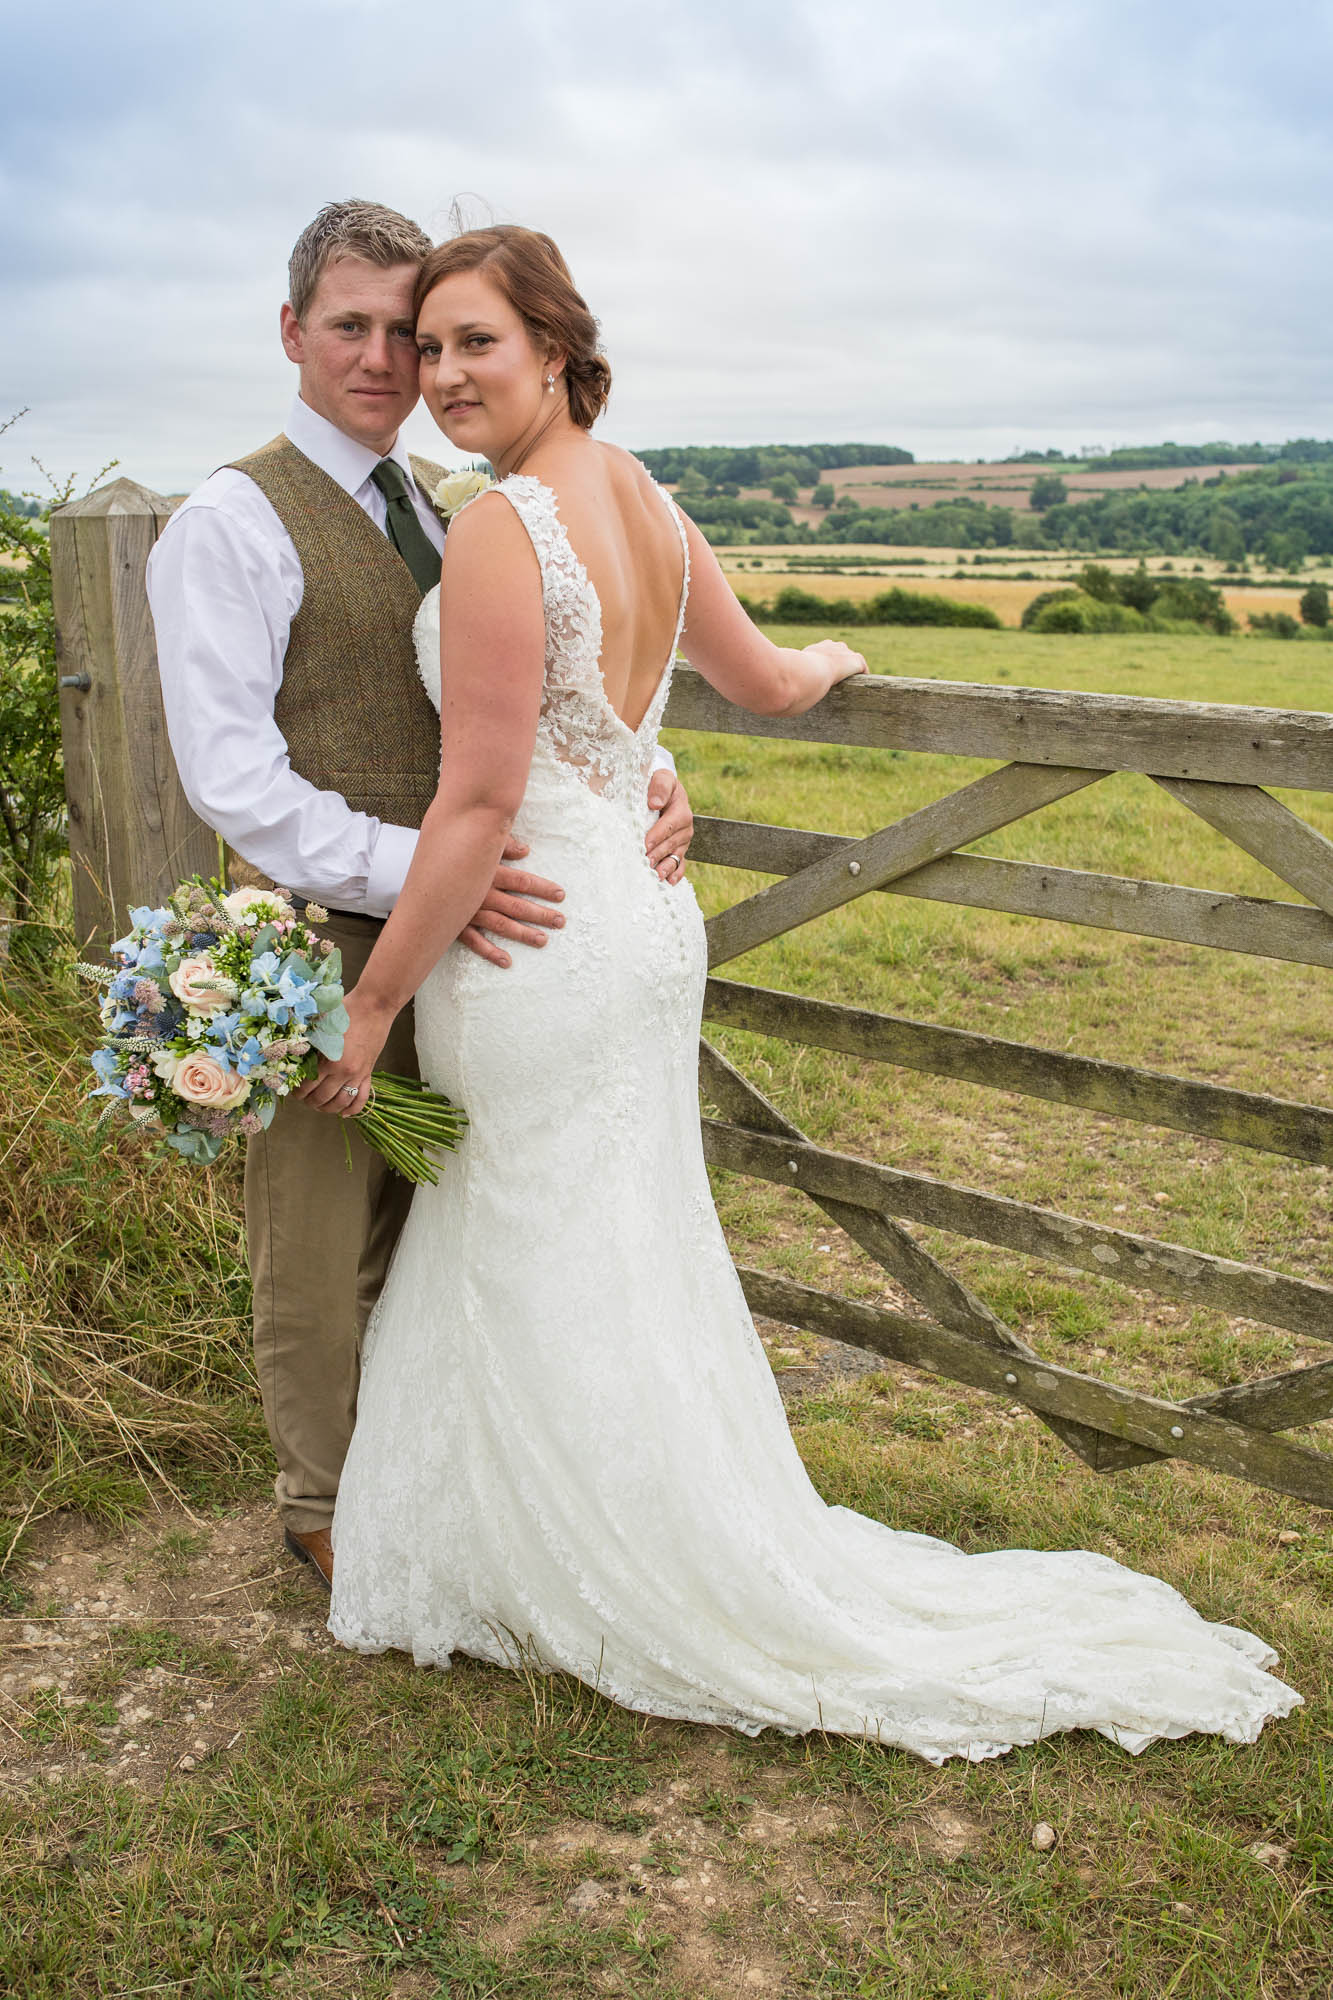 Loma Photography - Wedding Emporium Banbury